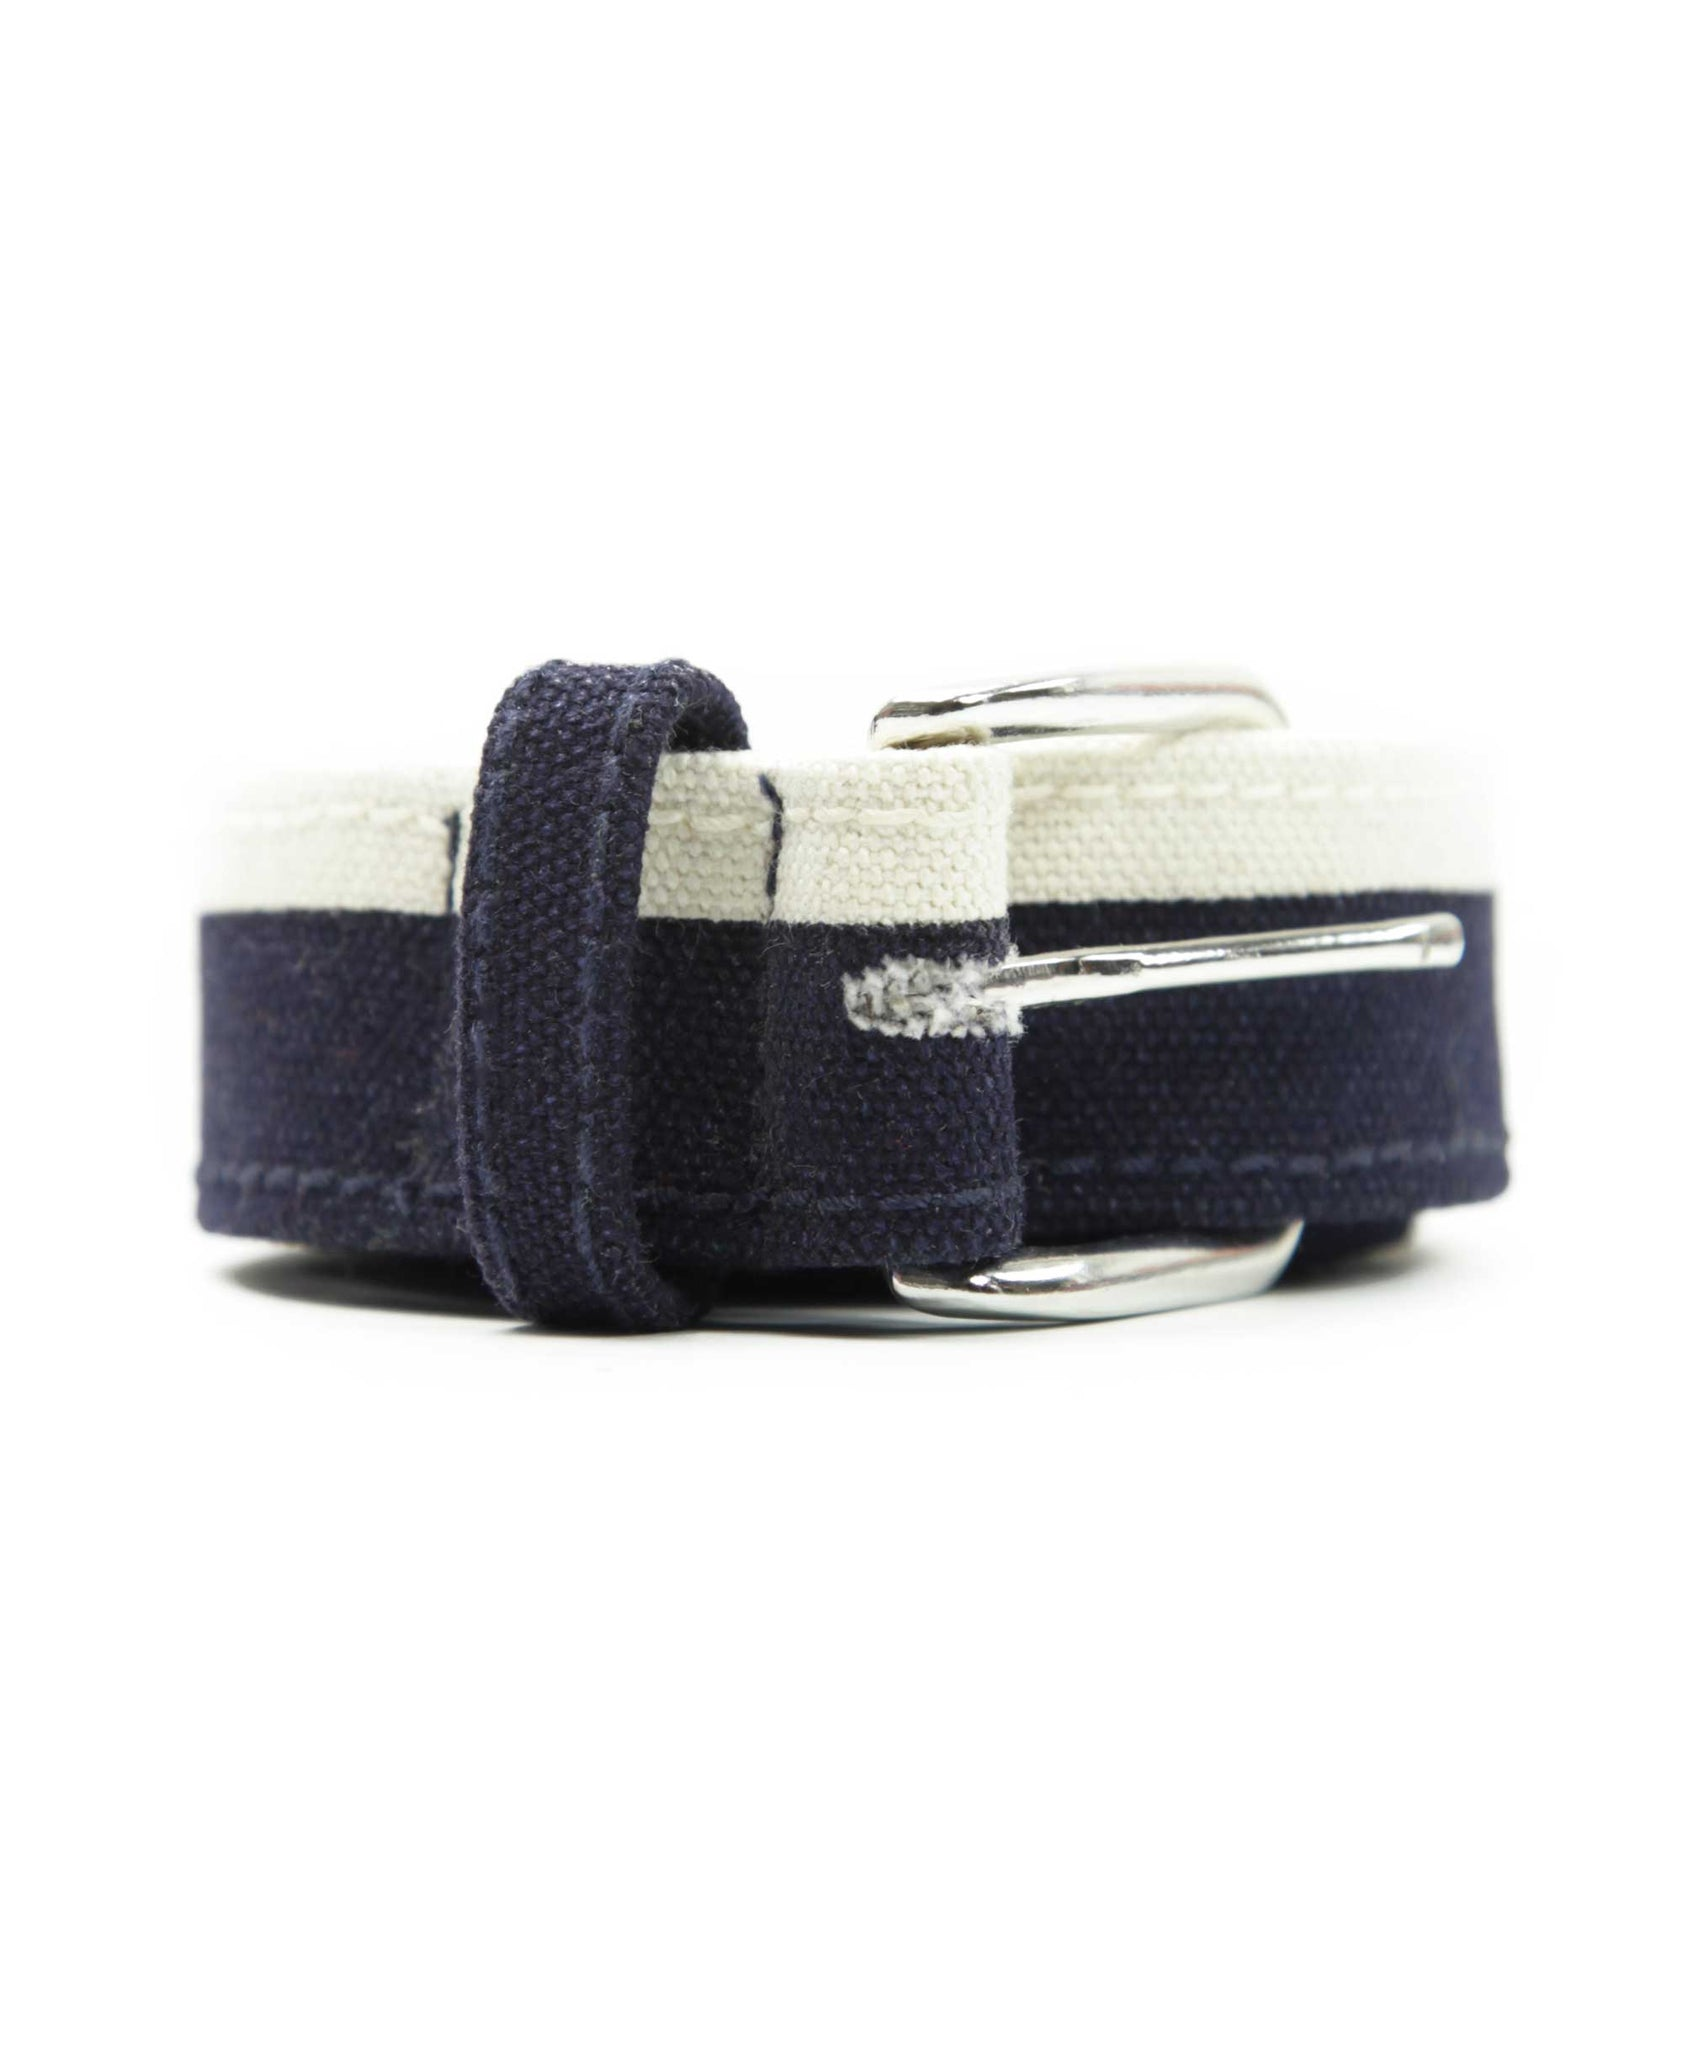 The Stripe Belt